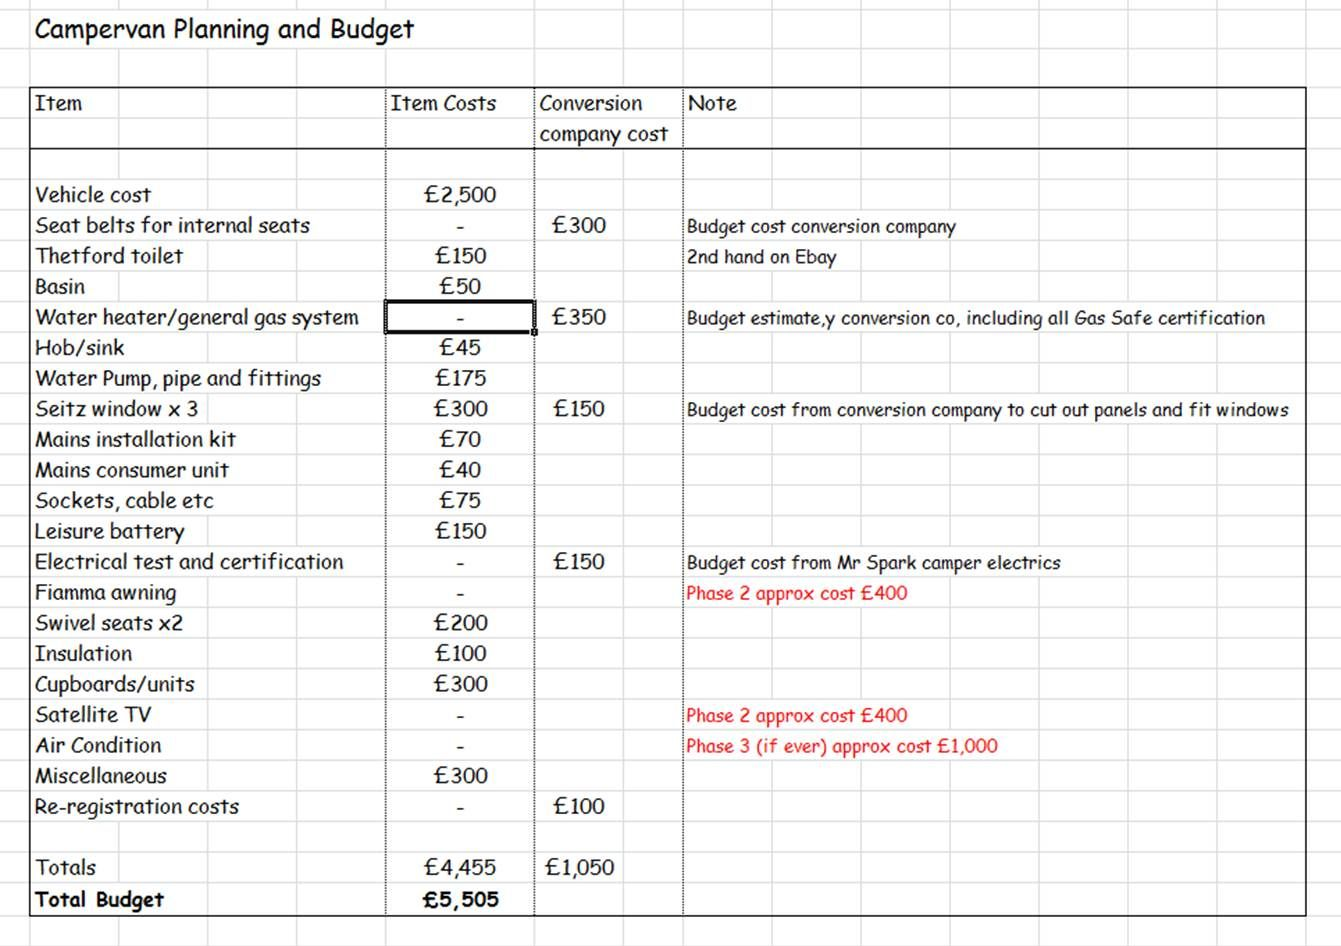 Planning and Budget Build a Campervan How to plan